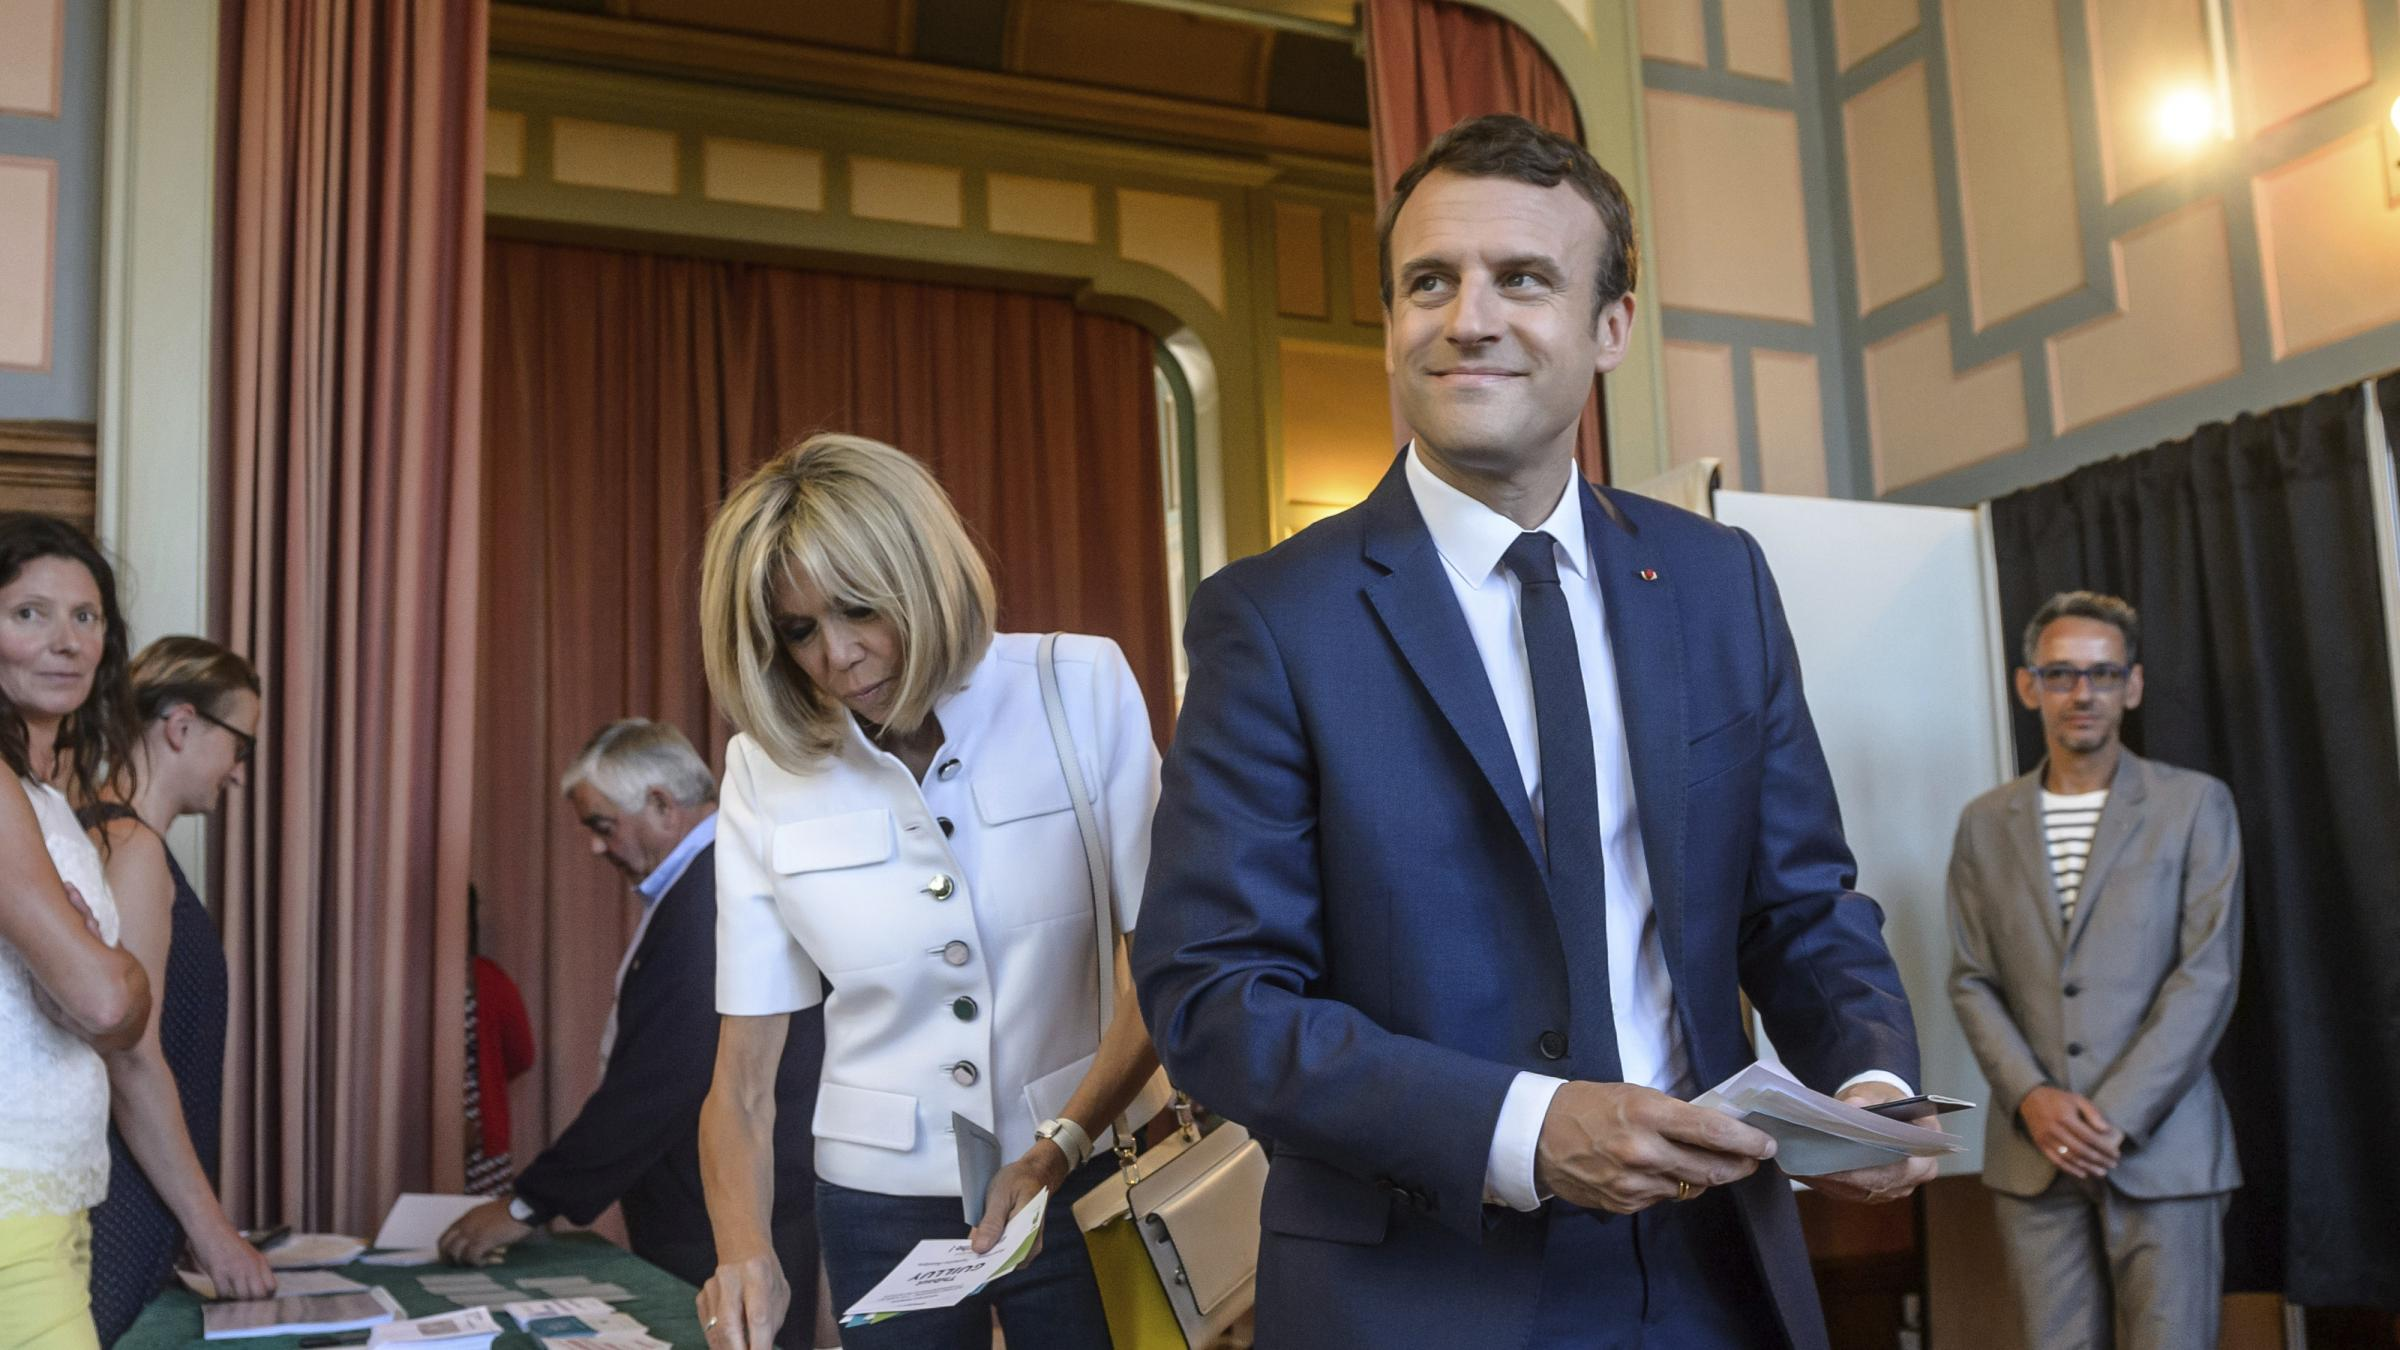 Early projections suggest Macron's REM party winning majority